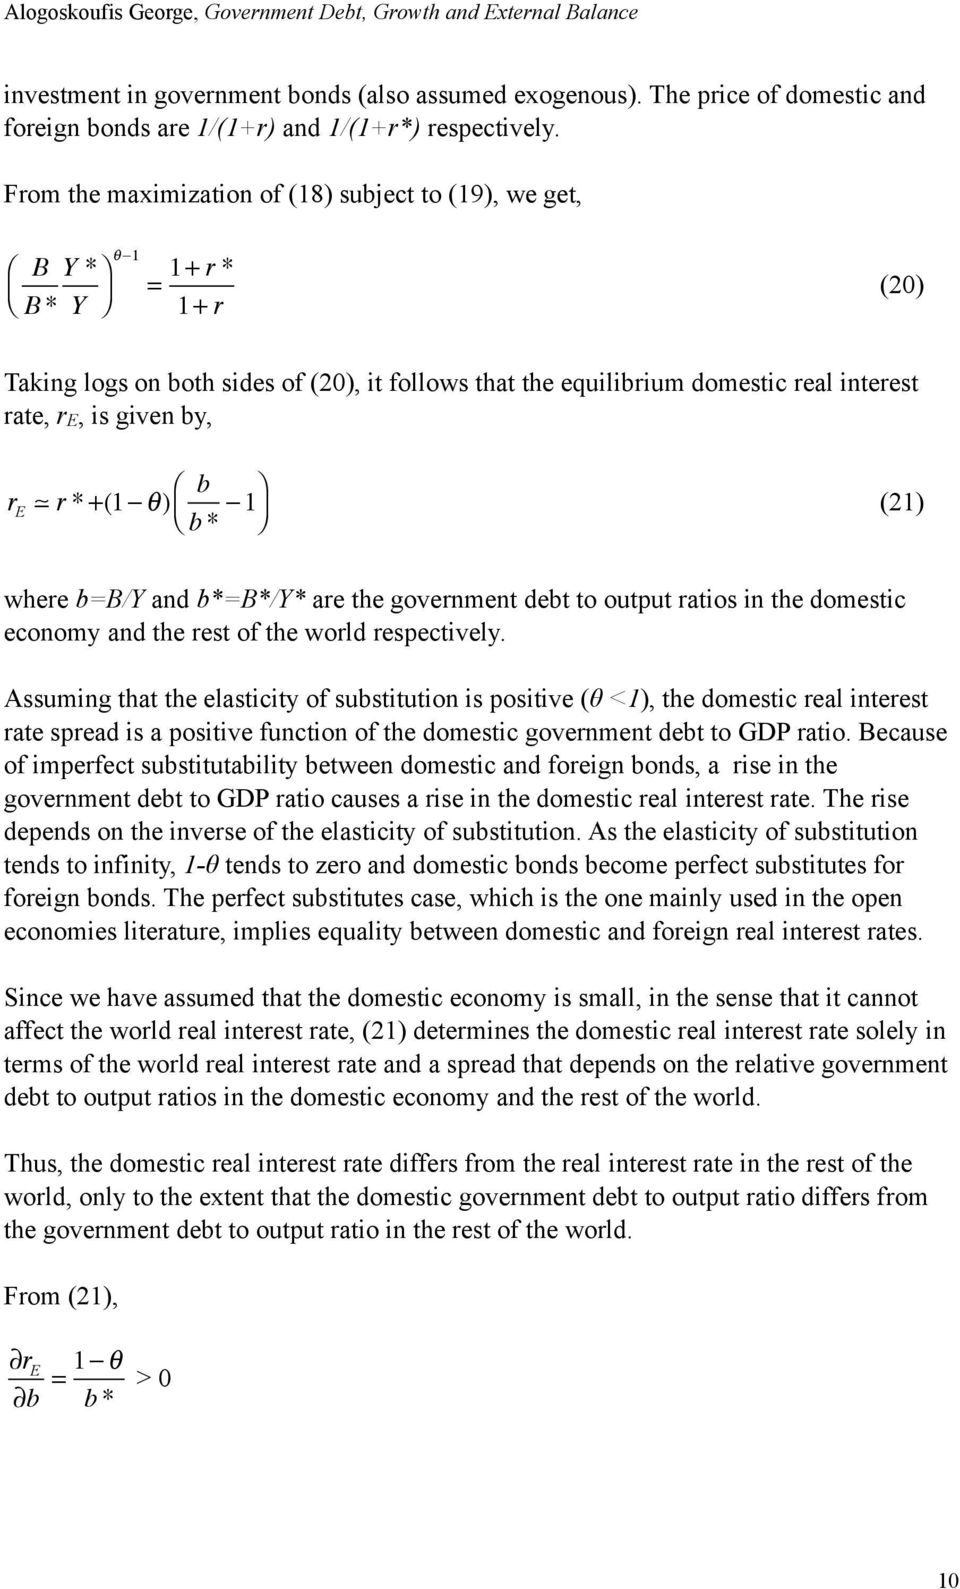 by, b r E r * +(1 θ) b * 1 (21) where b=b/y and b*=b*/y* are the government debt to output ratios in the domestic economy and the rest of the world respectively.